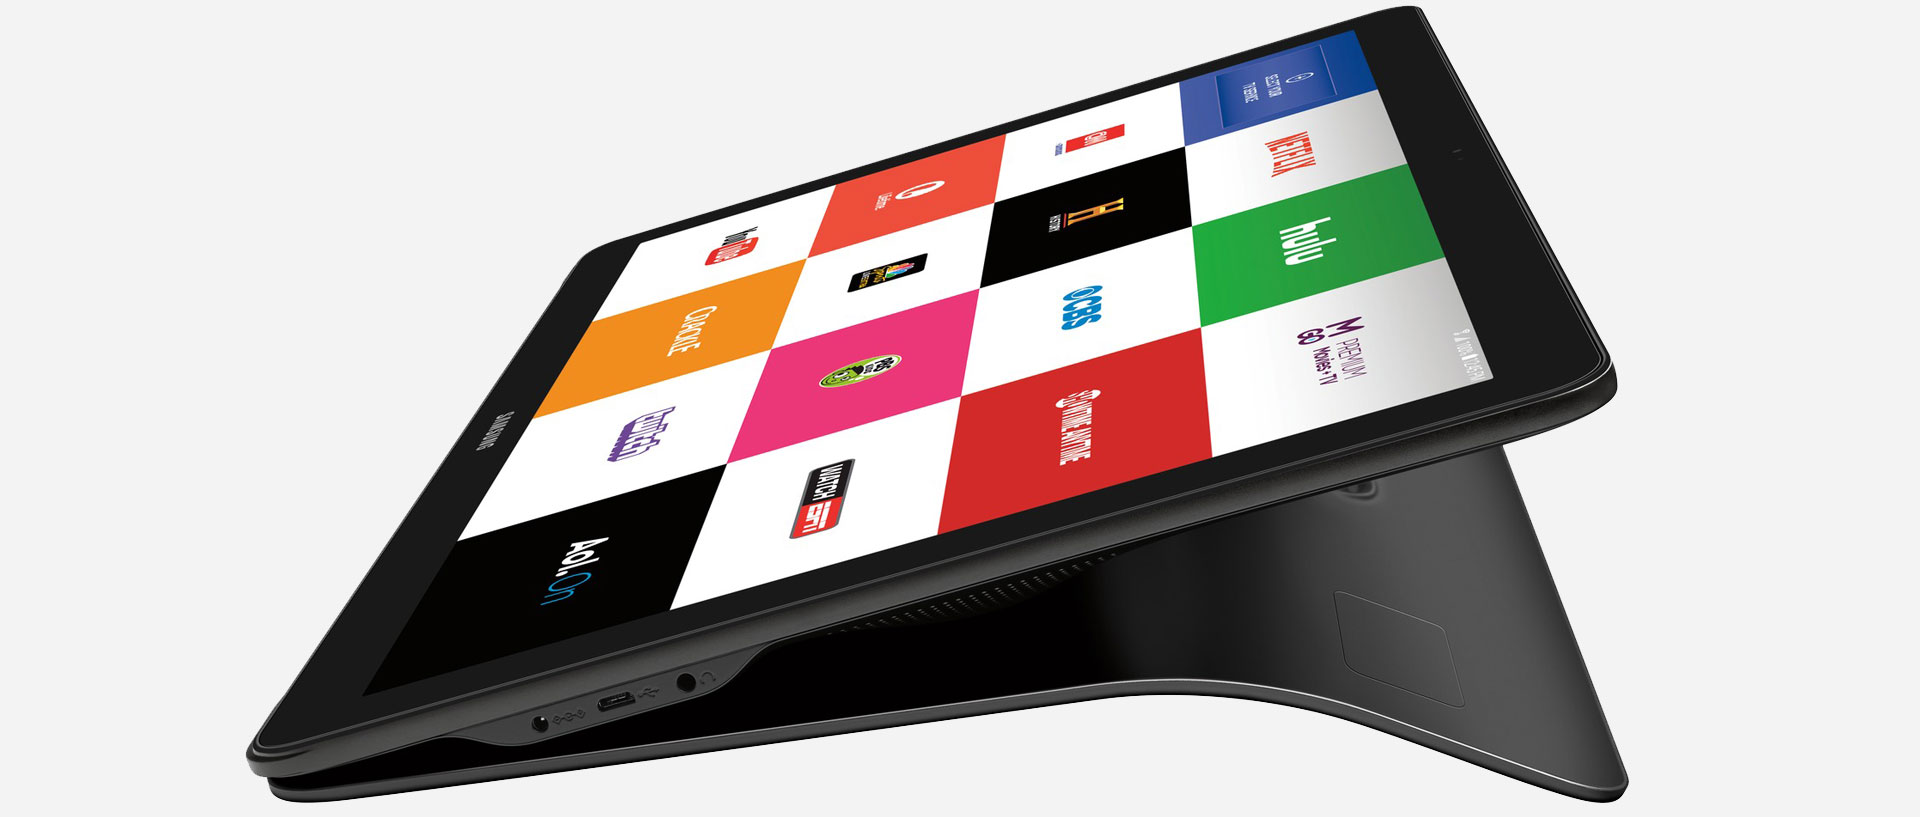 Samsung Galaxy View Review: The Tablet That Wants to Be a TV